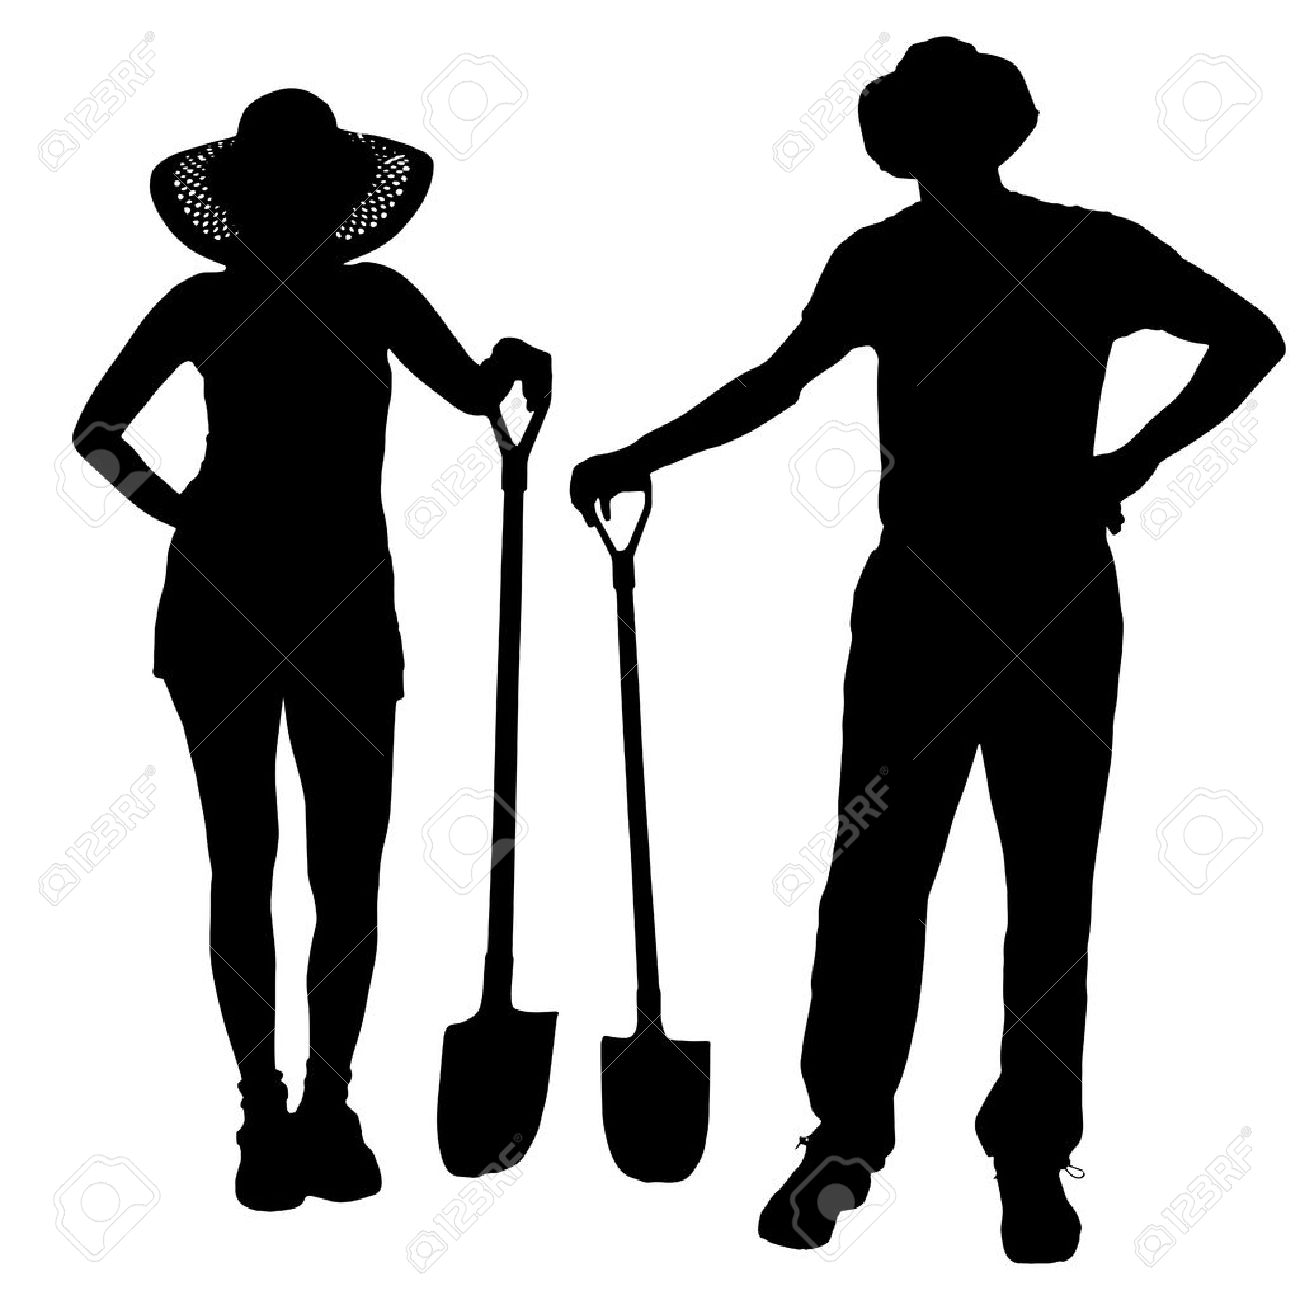 266 Couple Gardening Stock Vector Illustration And Royalty Free.